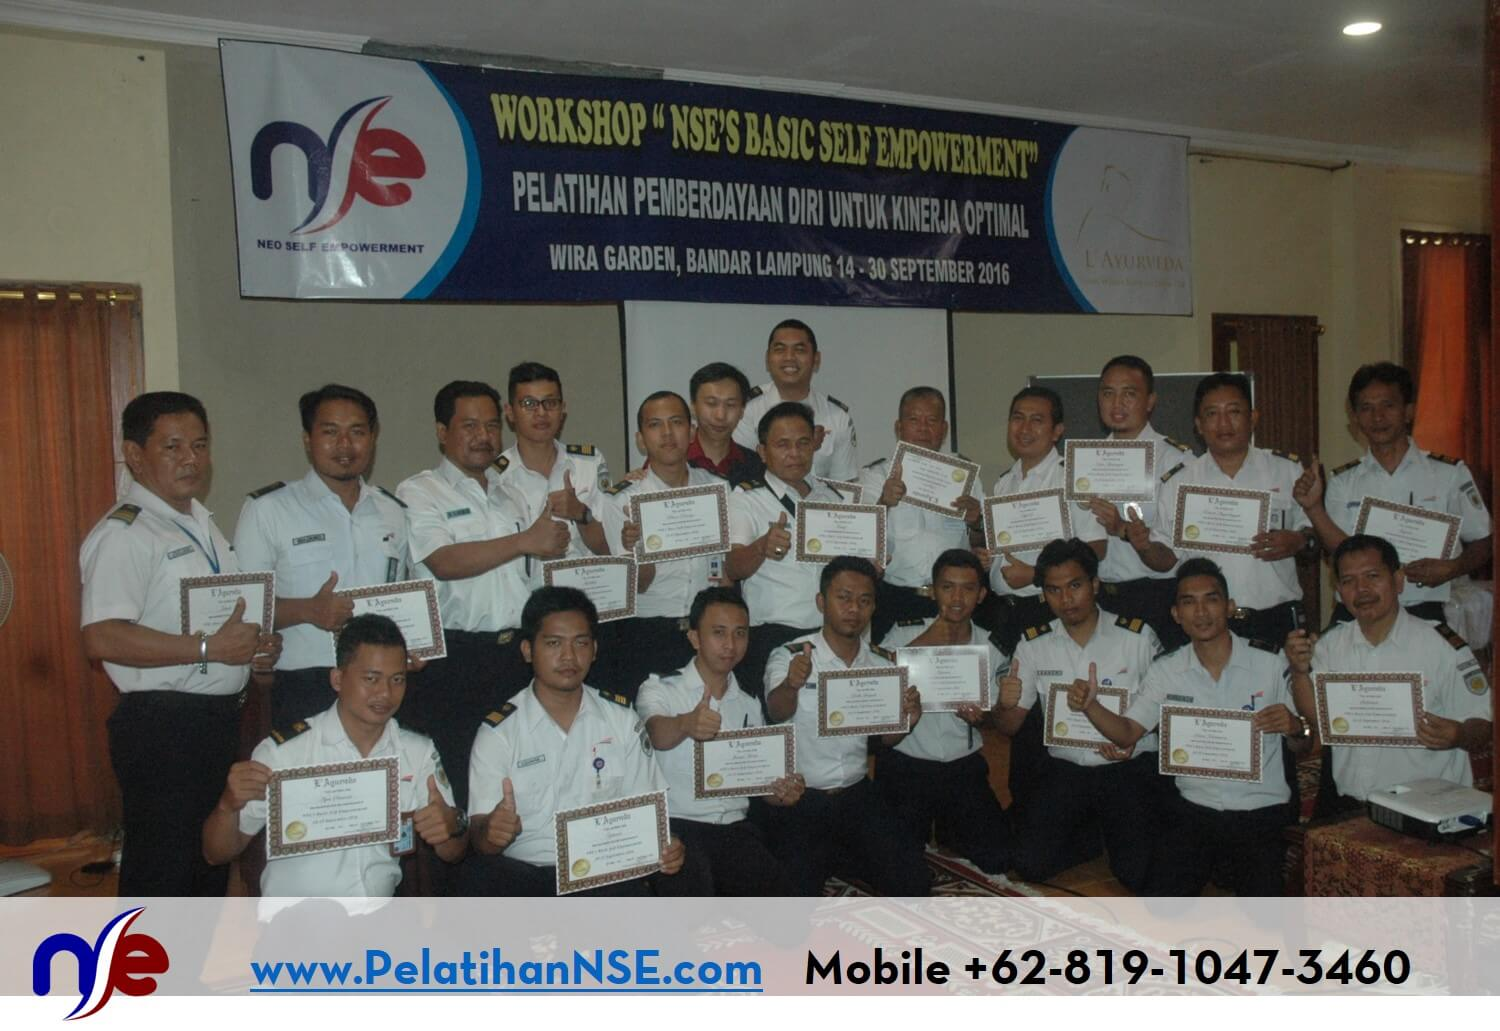 NSE Basic Self Empowerment KAI 14-15 September 2016 - Foto Bersama